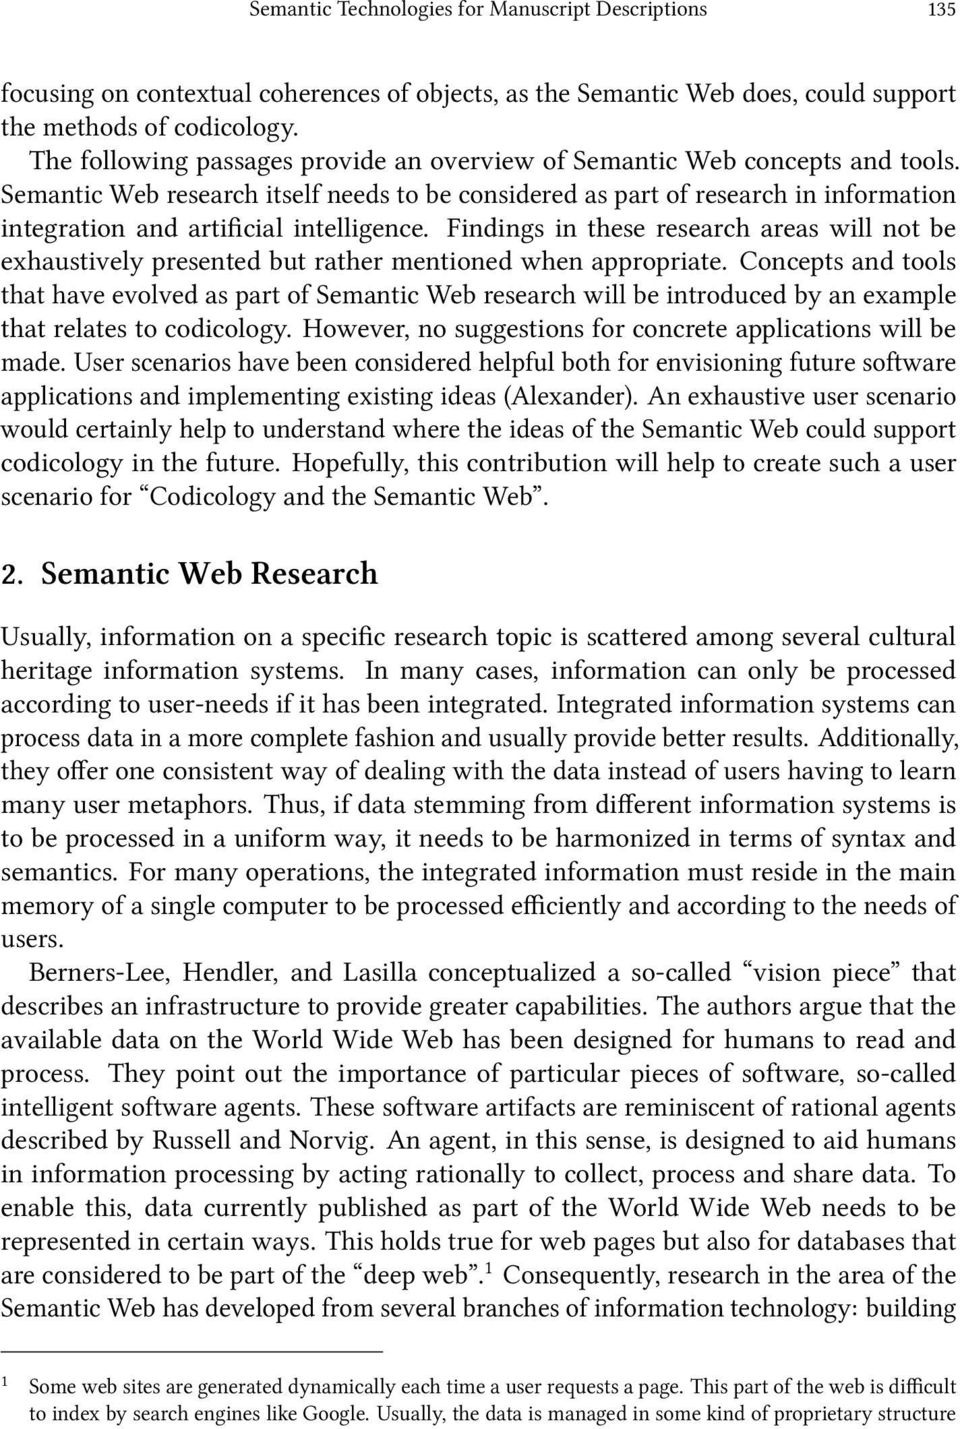 Semantic Web research itself needs to be considered as part of research in information integration and articial intelligence.